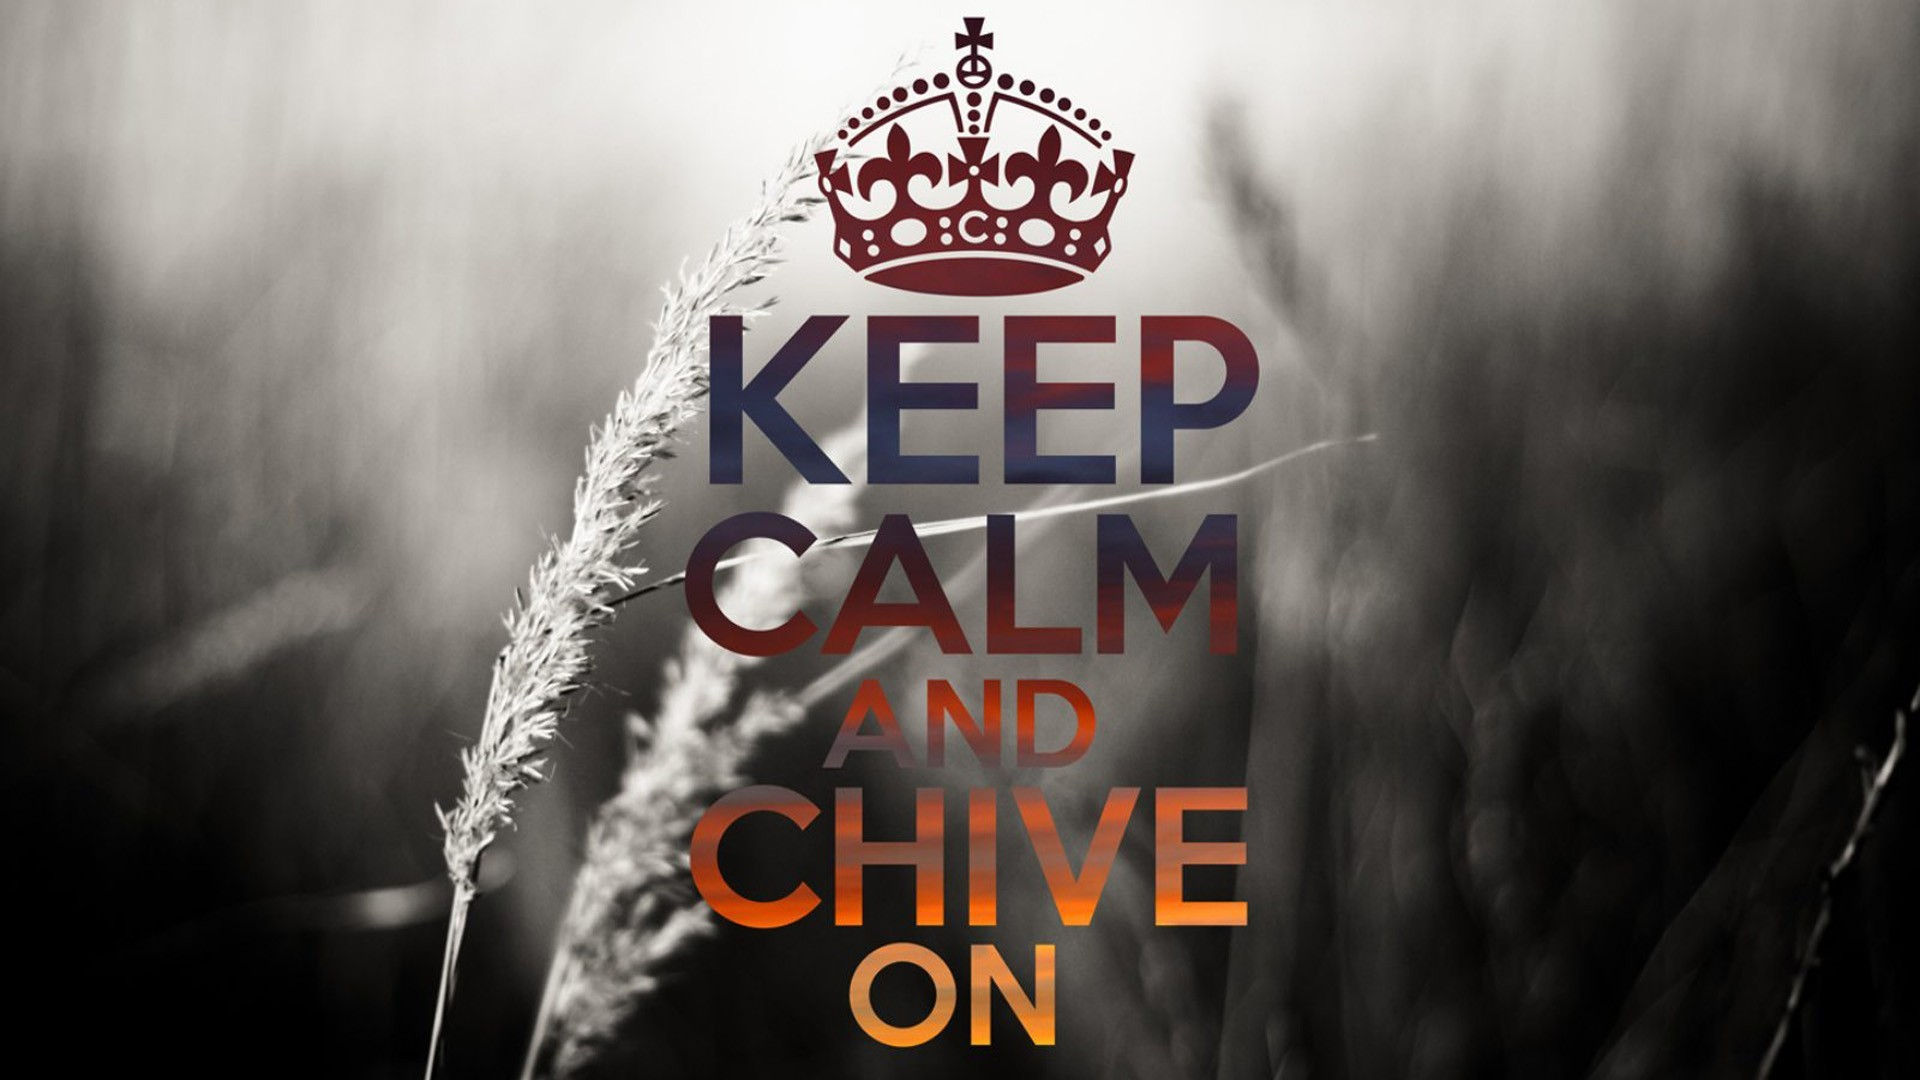 Keep Calm And Chive On Wallpaper – https://wallpaperzoo.com/keep